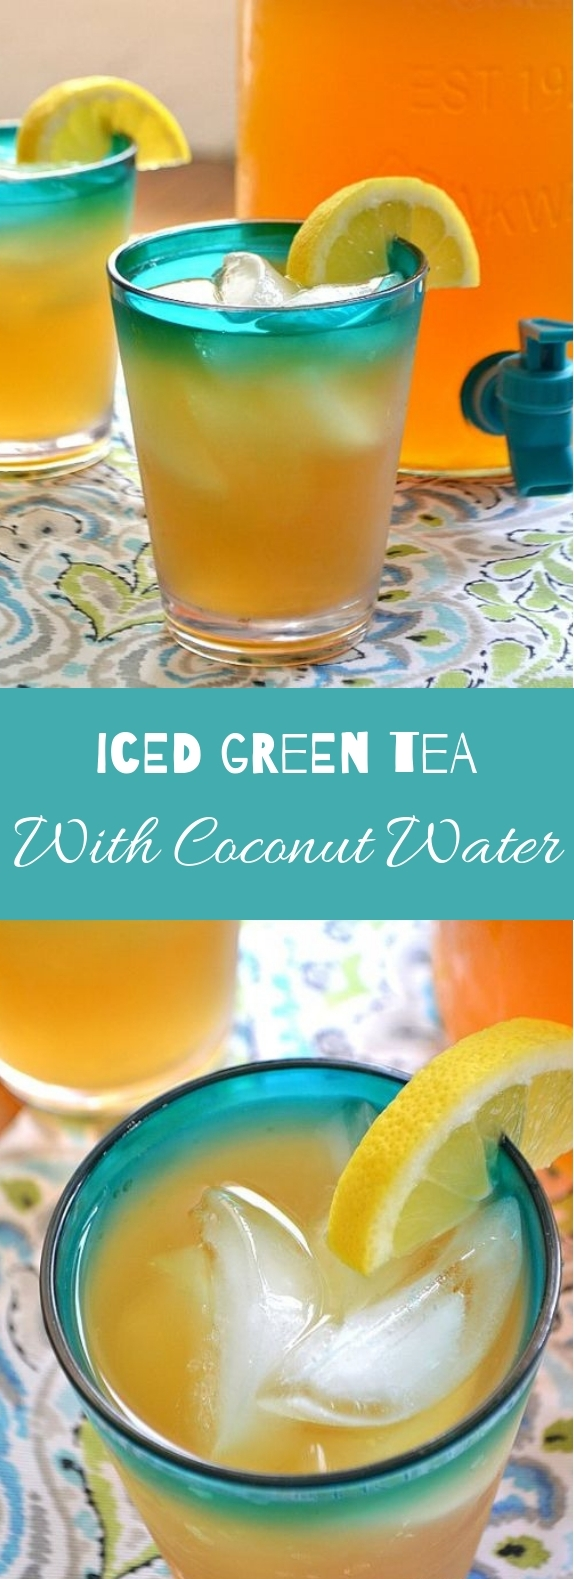 Iced Green Tea with Coconut Water #freshdrink #greentea